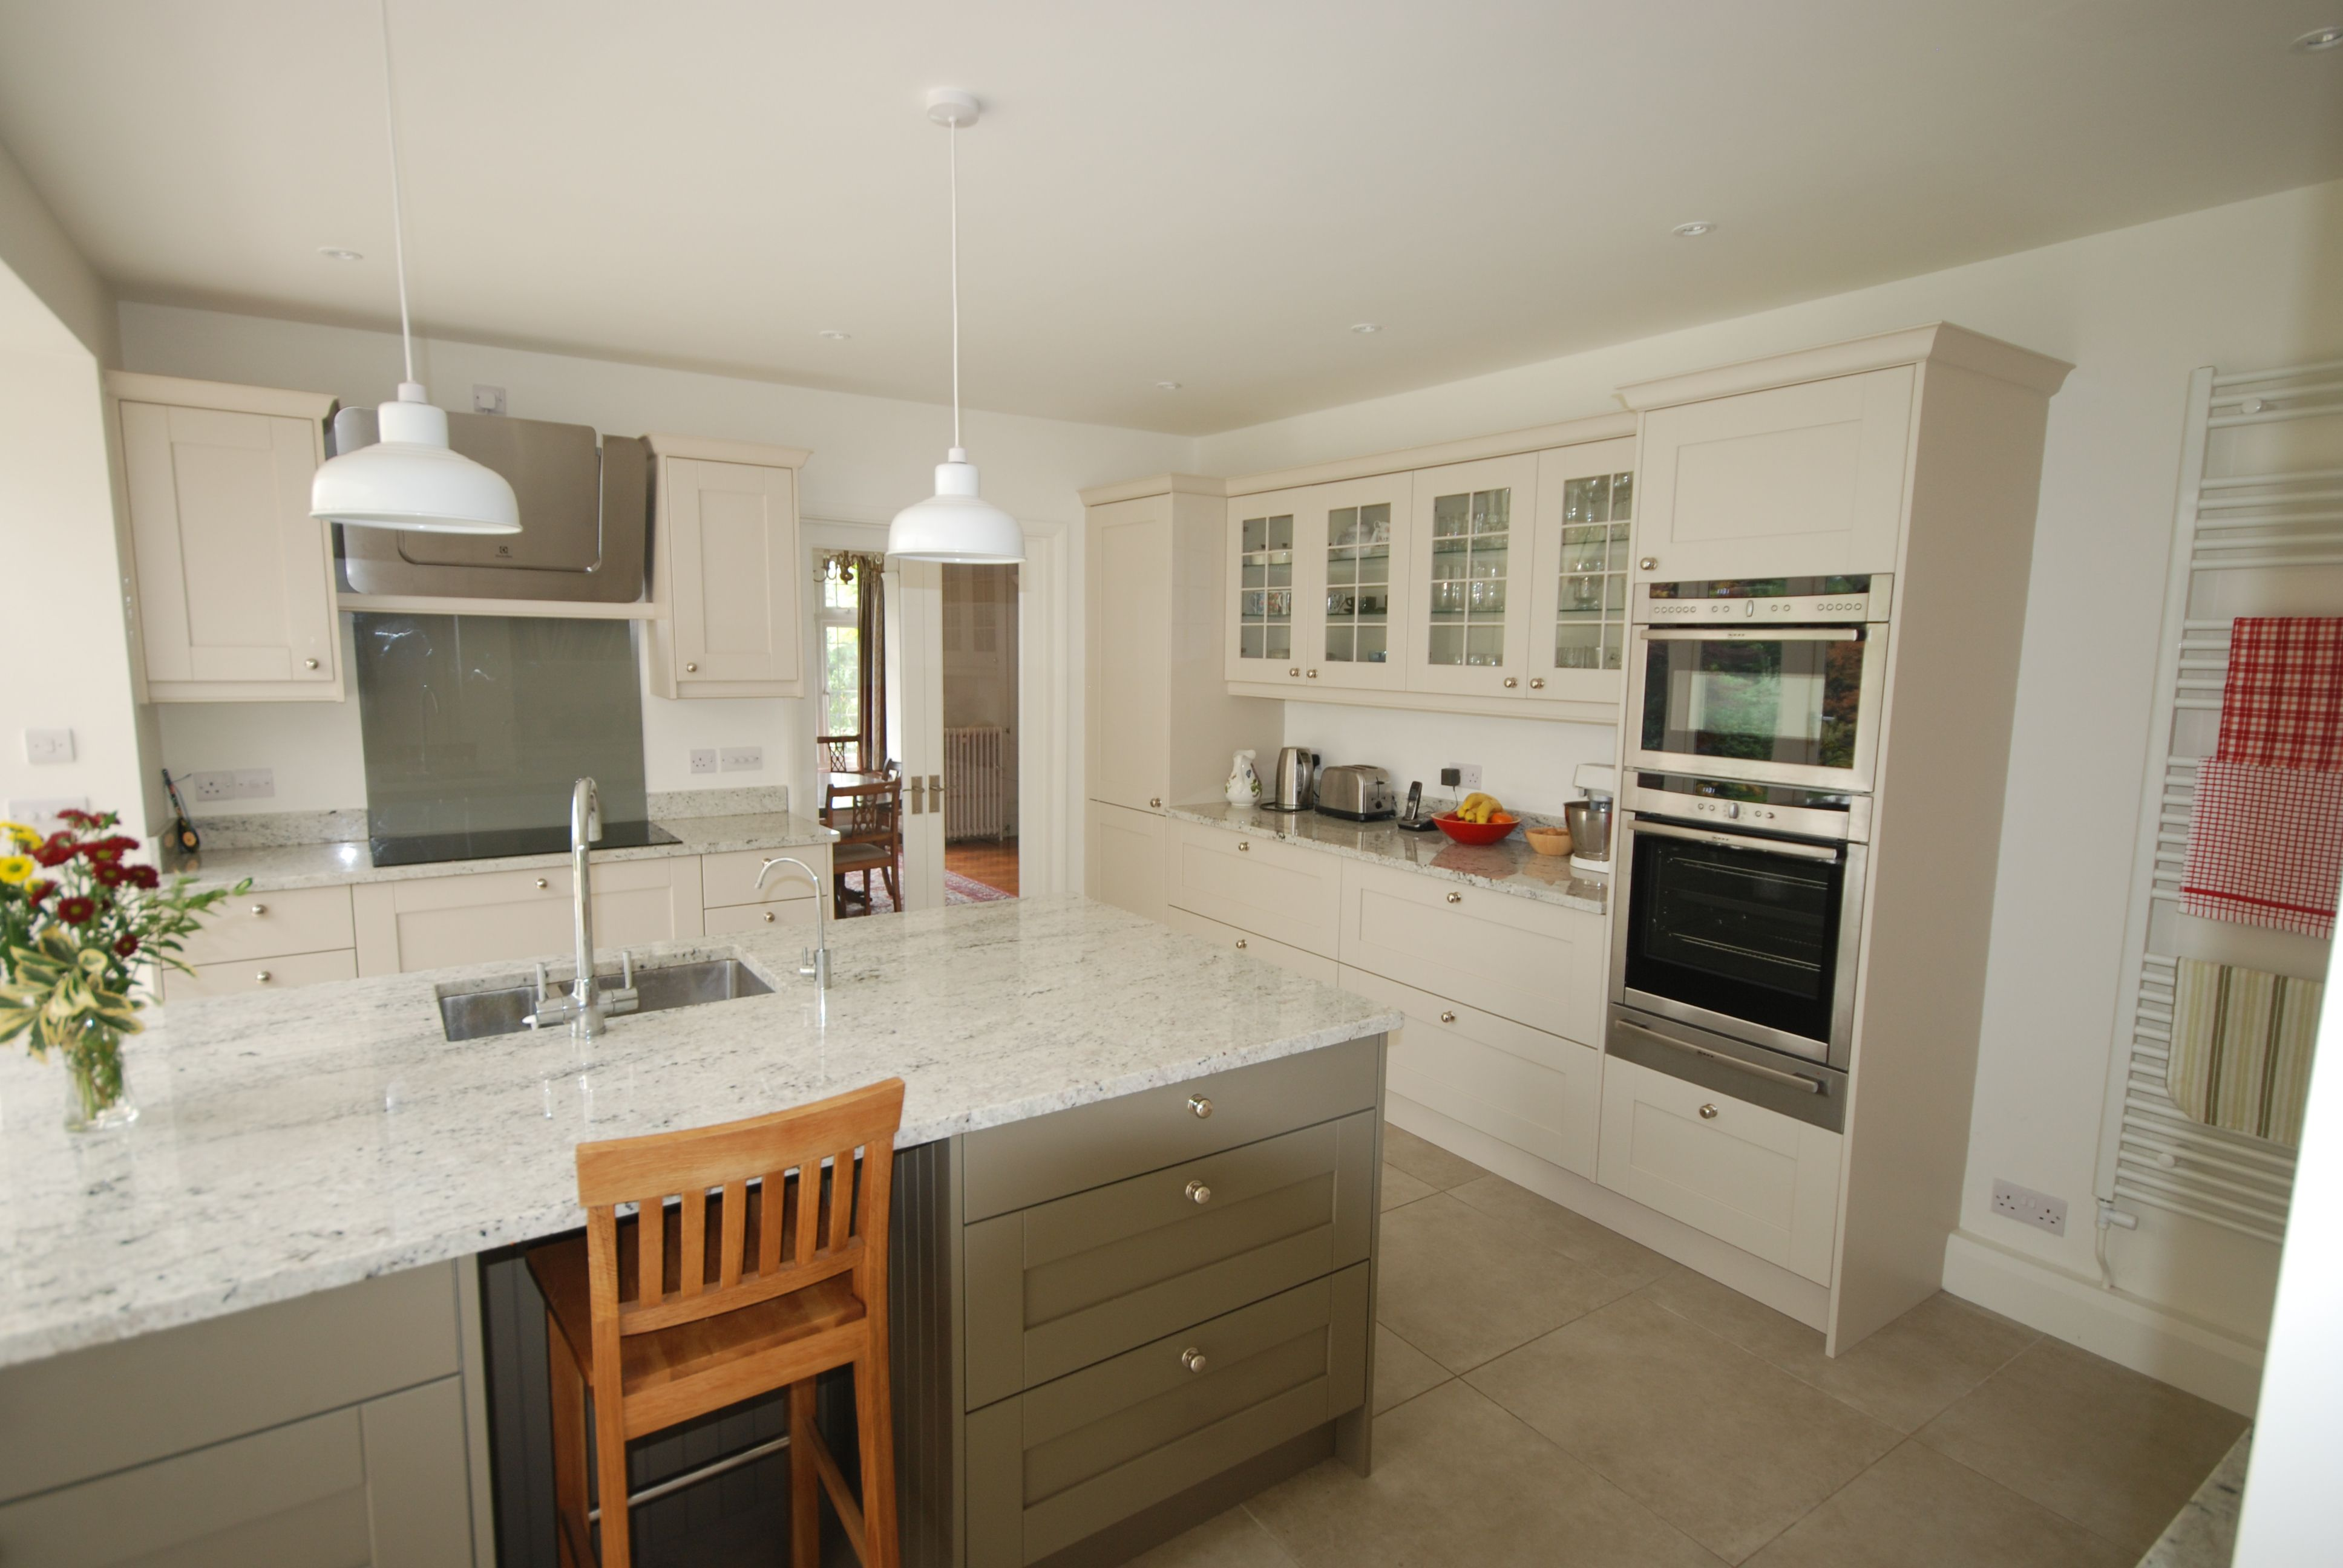 Colonial White Granite Kitchen Eribol Kitchen Painted In Mussell Olive With Colonial White